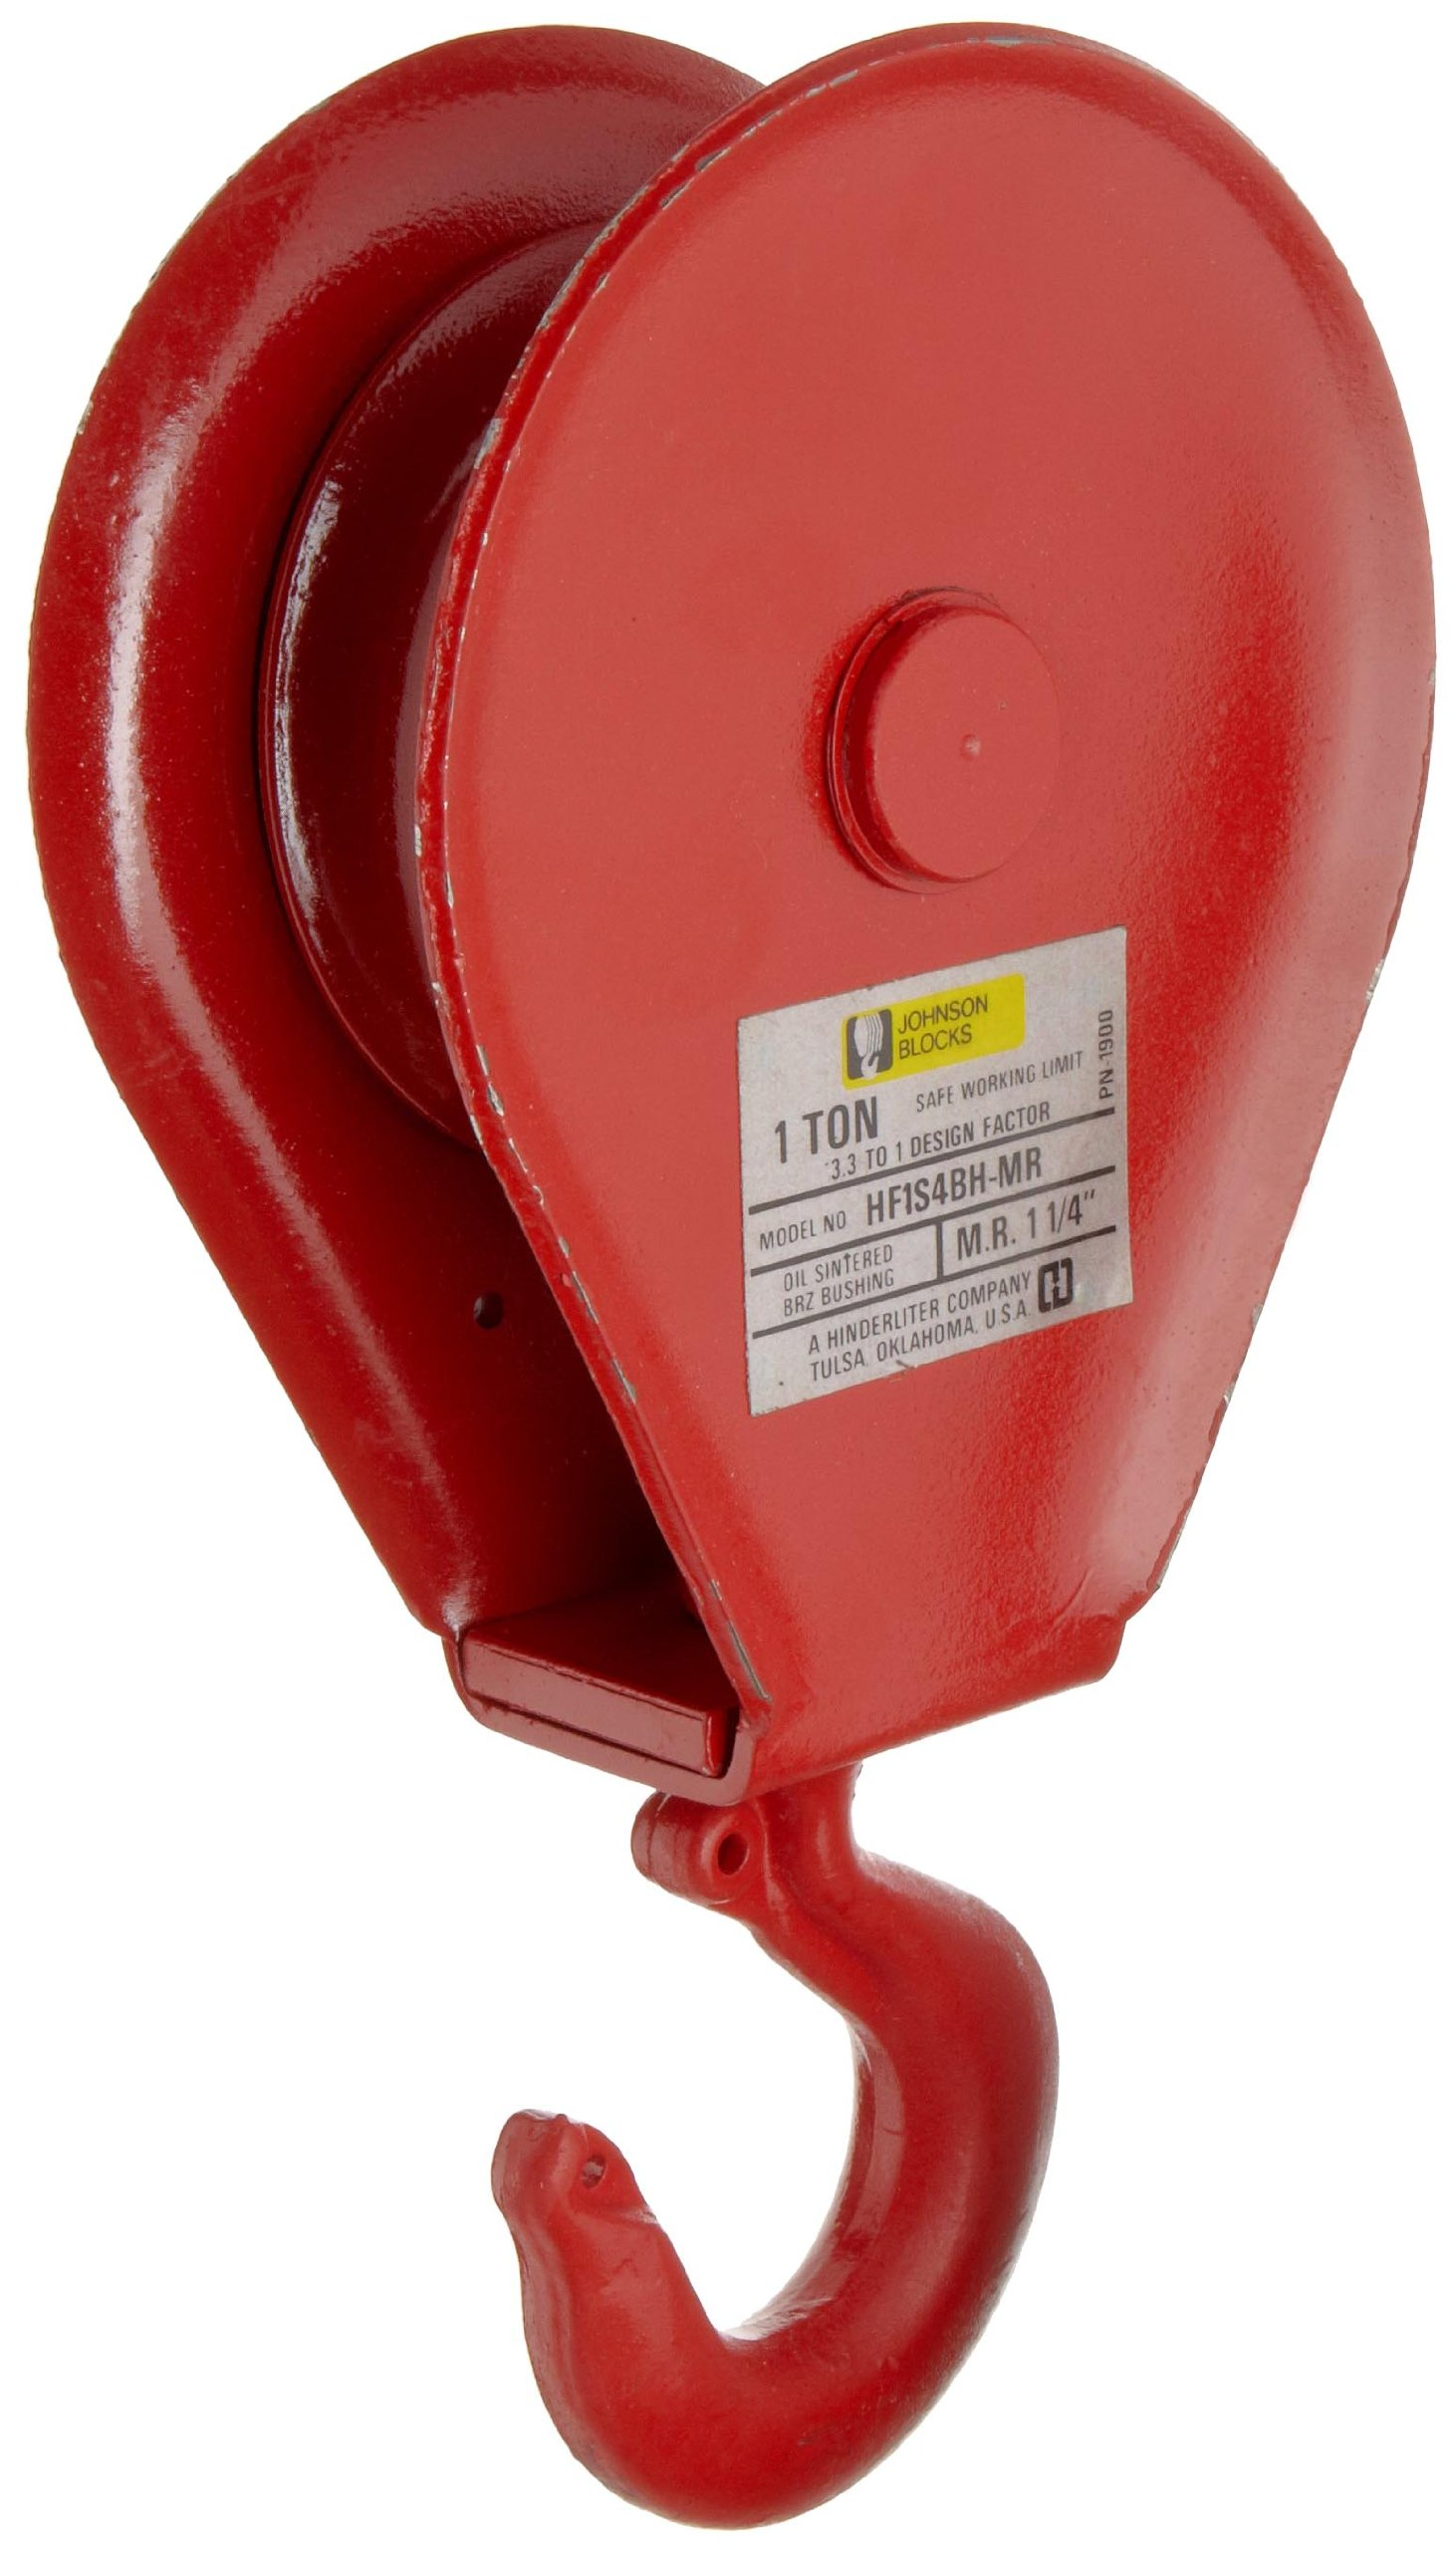 Gunnebo Johnson HF1S4BH-MR Hay Fork Pulley with